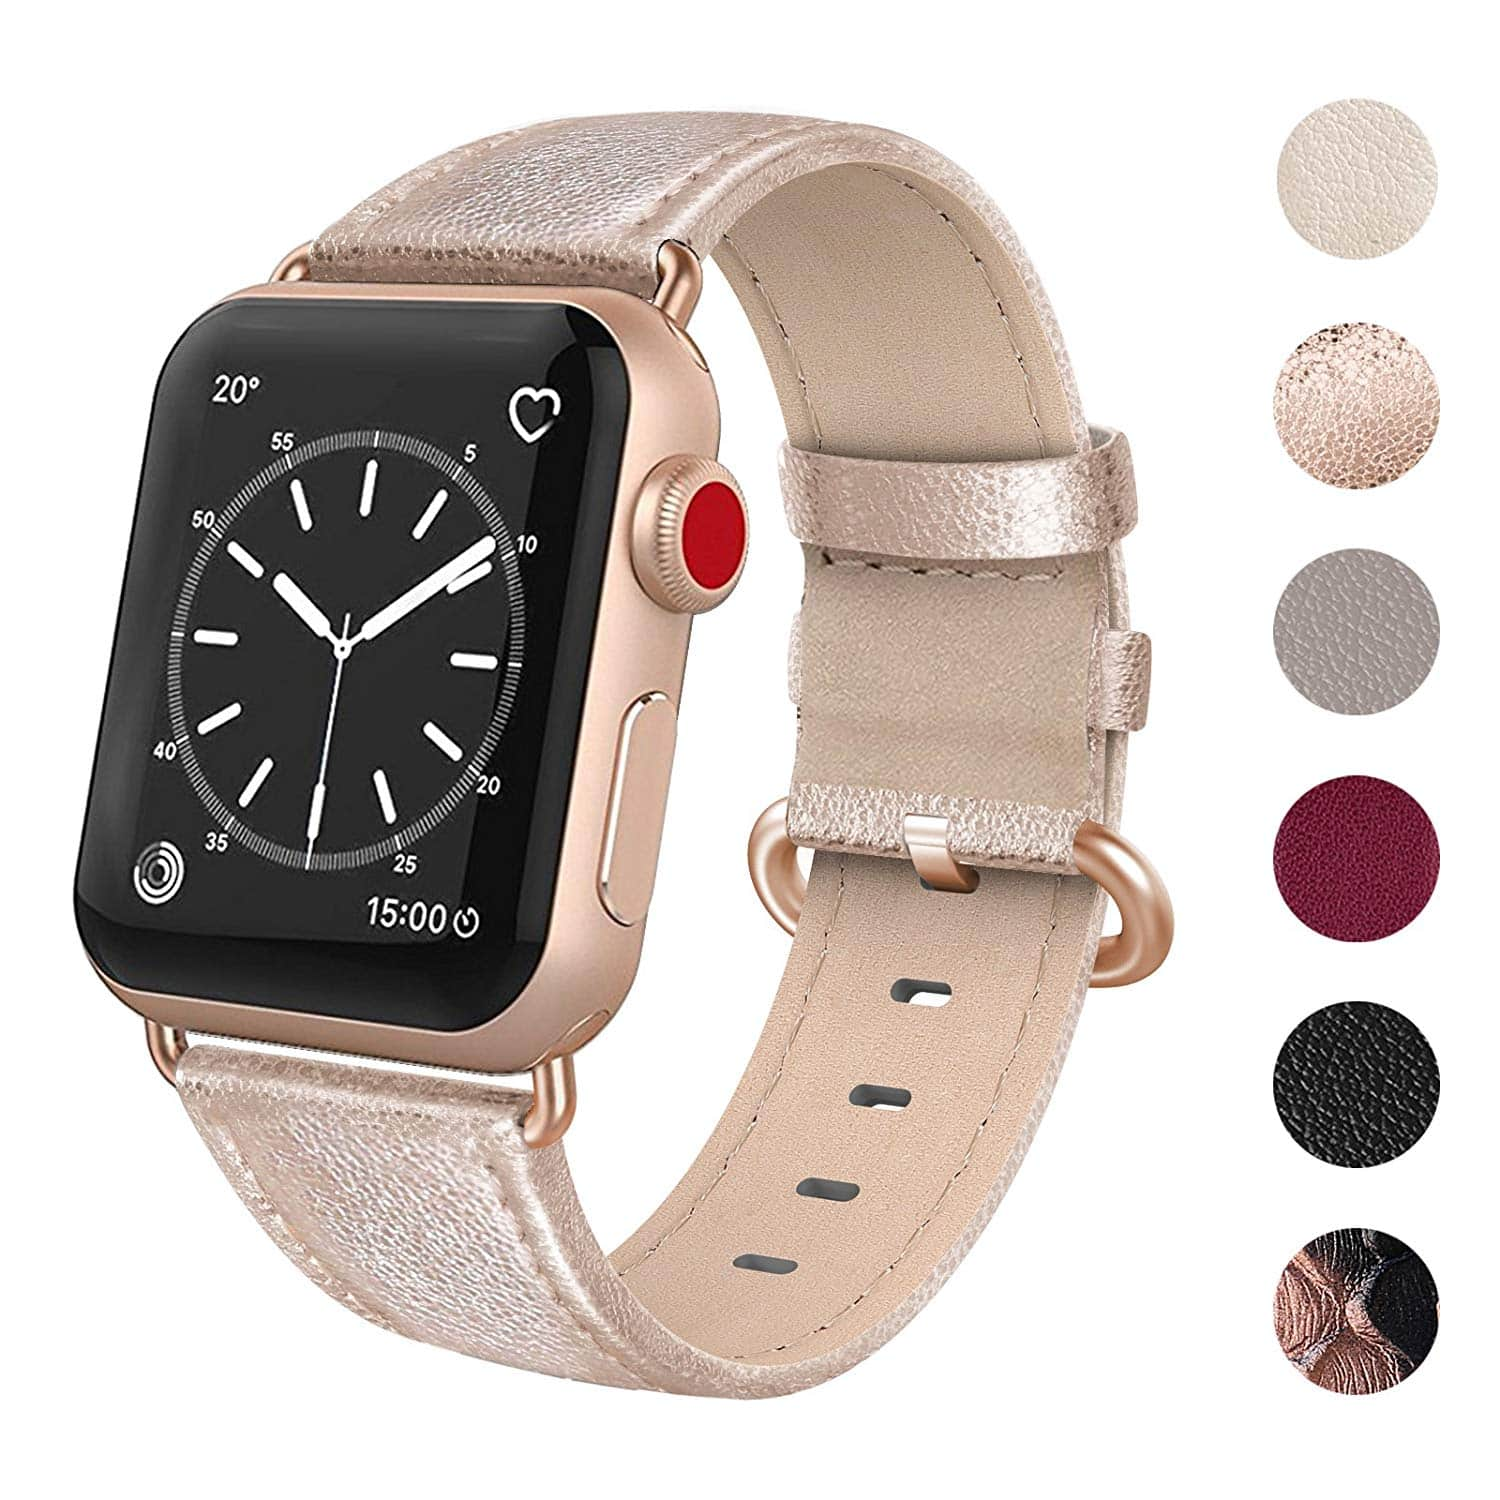 0861cc094f6 50% OFF - Genuine Leather Compatible Apple Watch Band 38mm - Watch Series 3  Series 2 Series 1 Sport Edition (Women) -  4.50